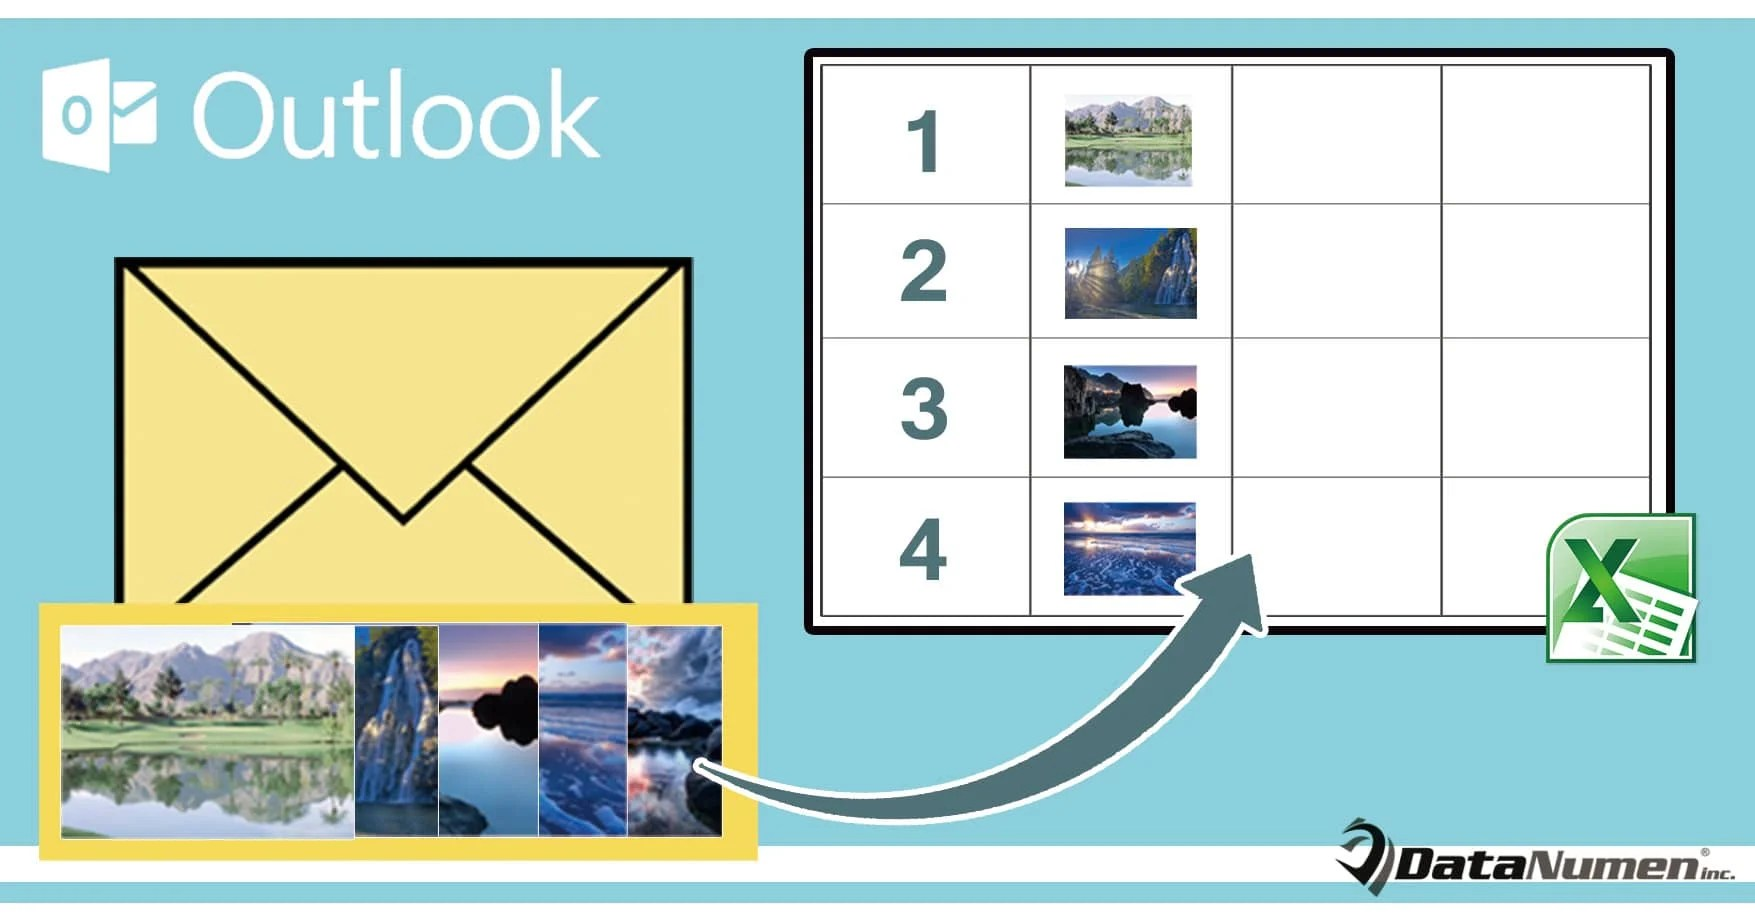 Quickly Export All Image Attachments of an Outlook Email to an Excel Worksheet